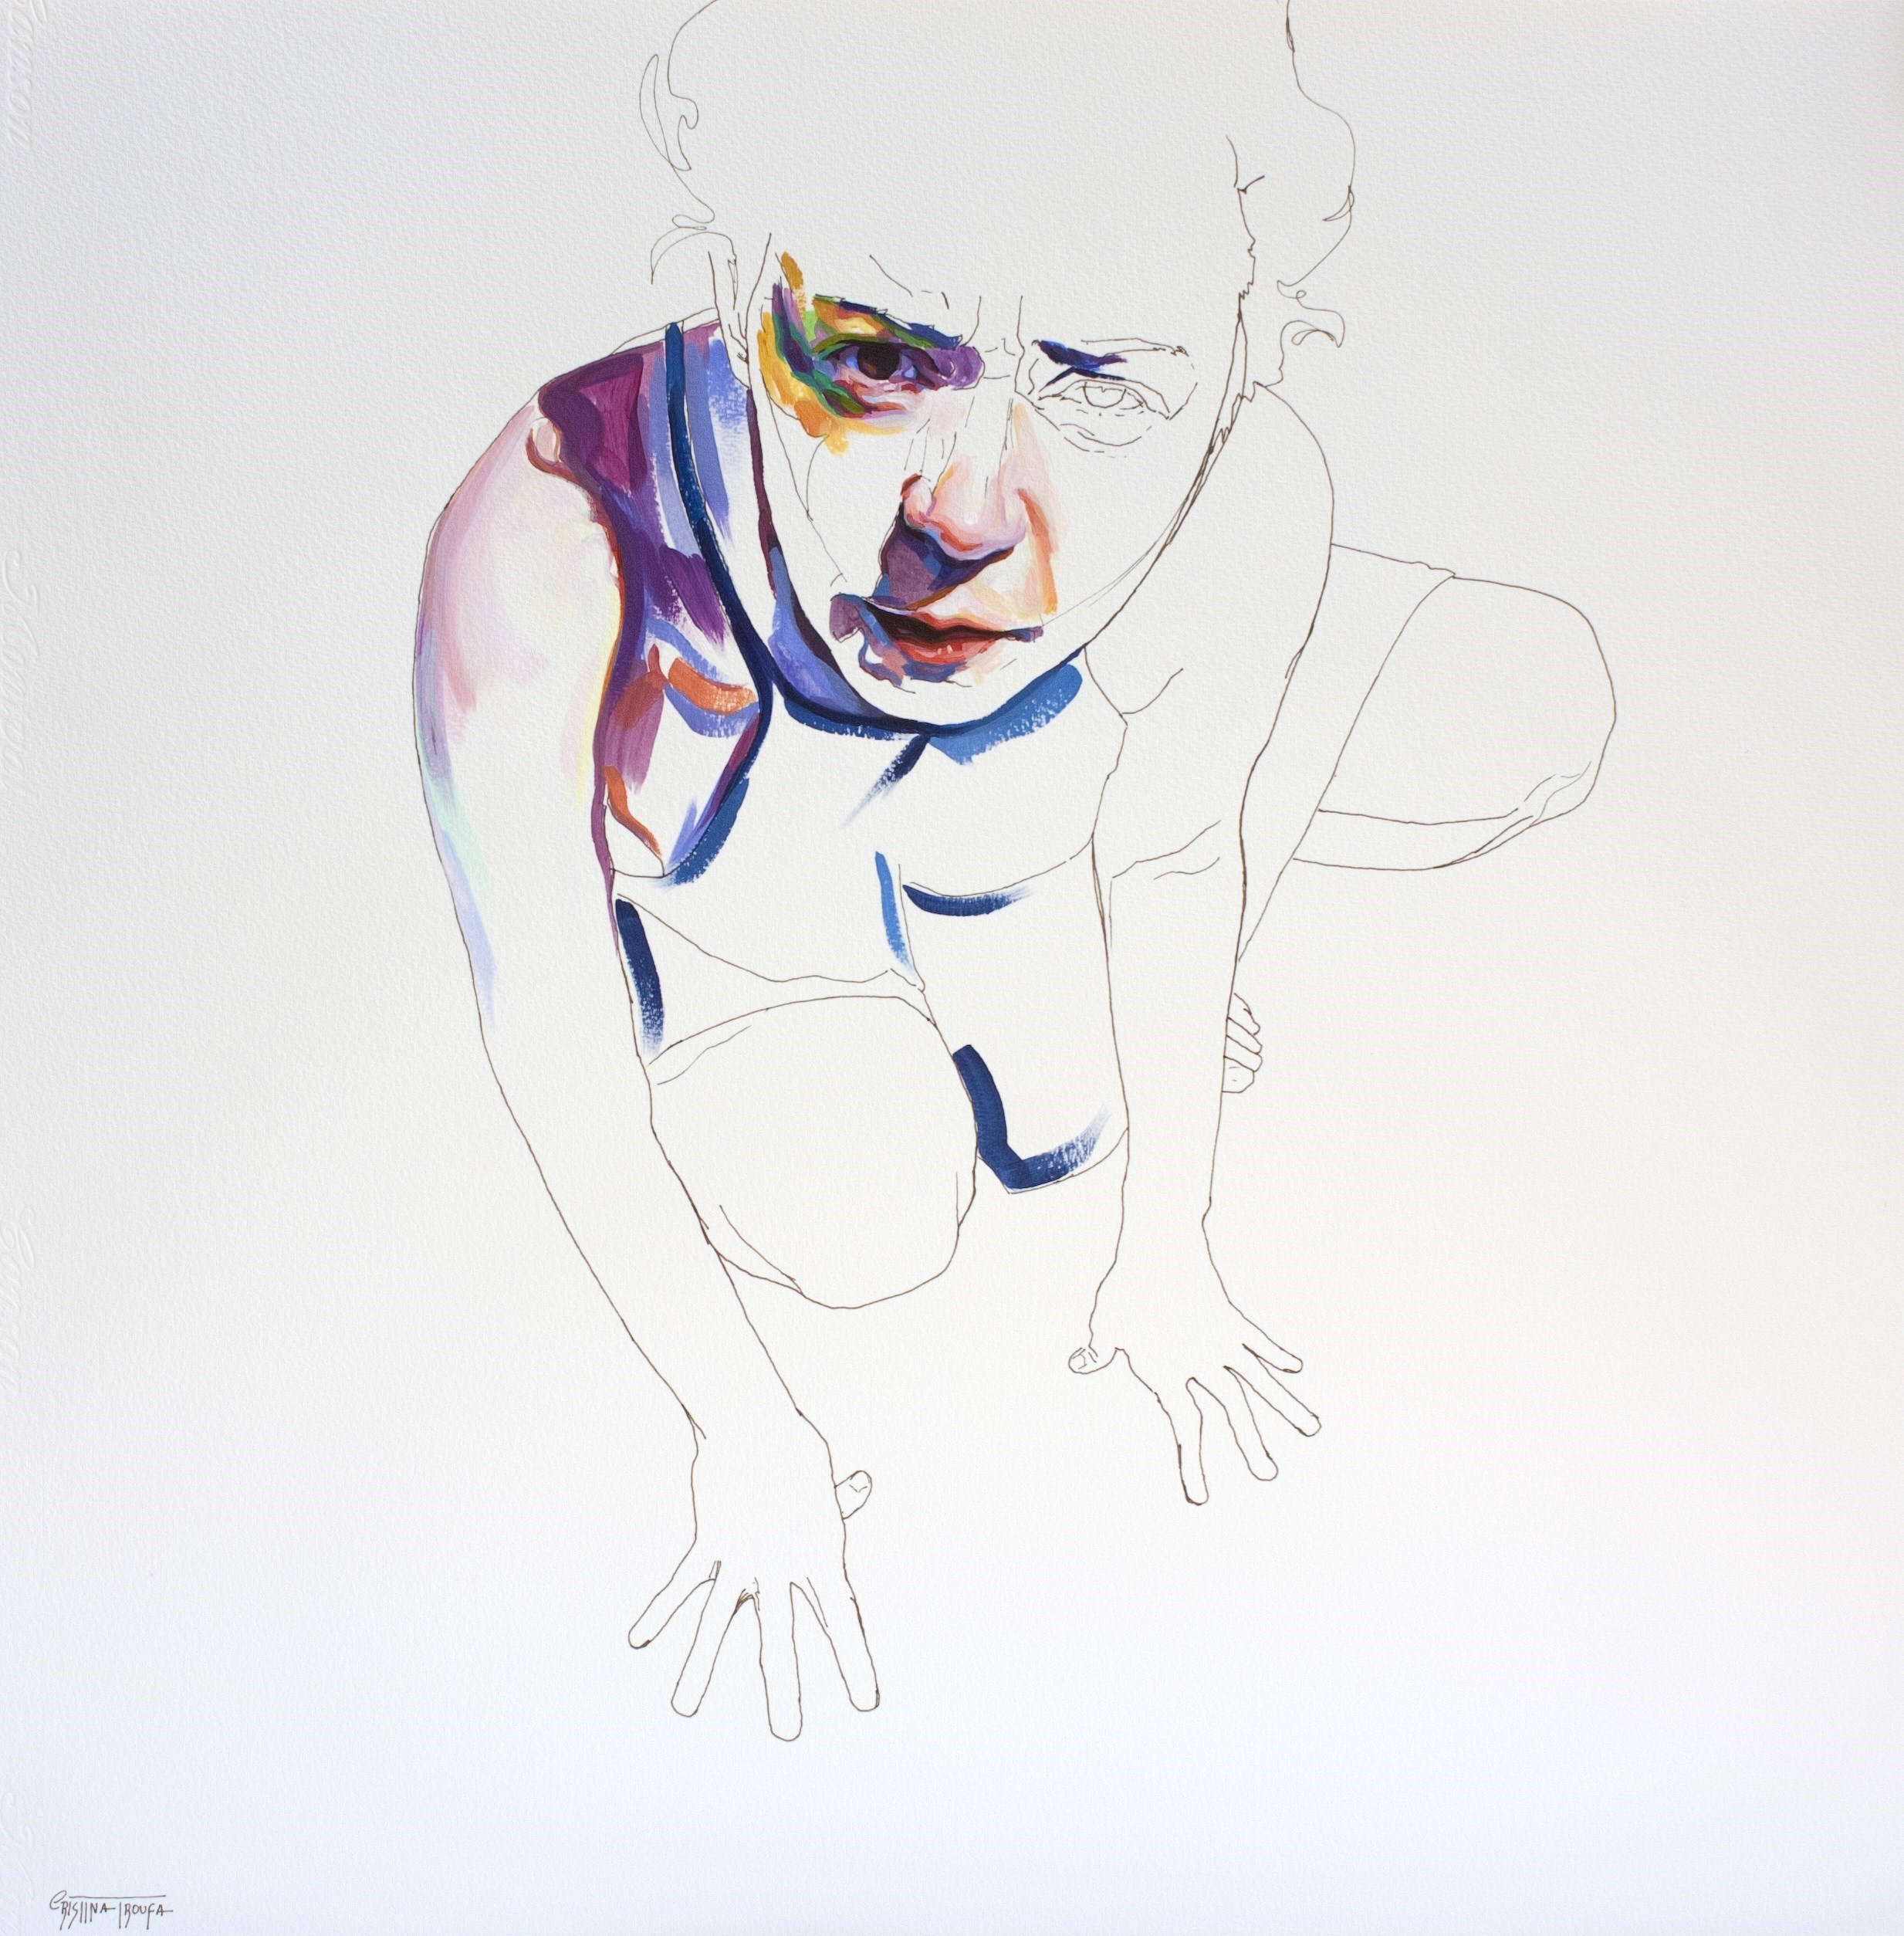 Exercício #7, original Body Acrylic Drawing and Illustration by Cristina  Troufa